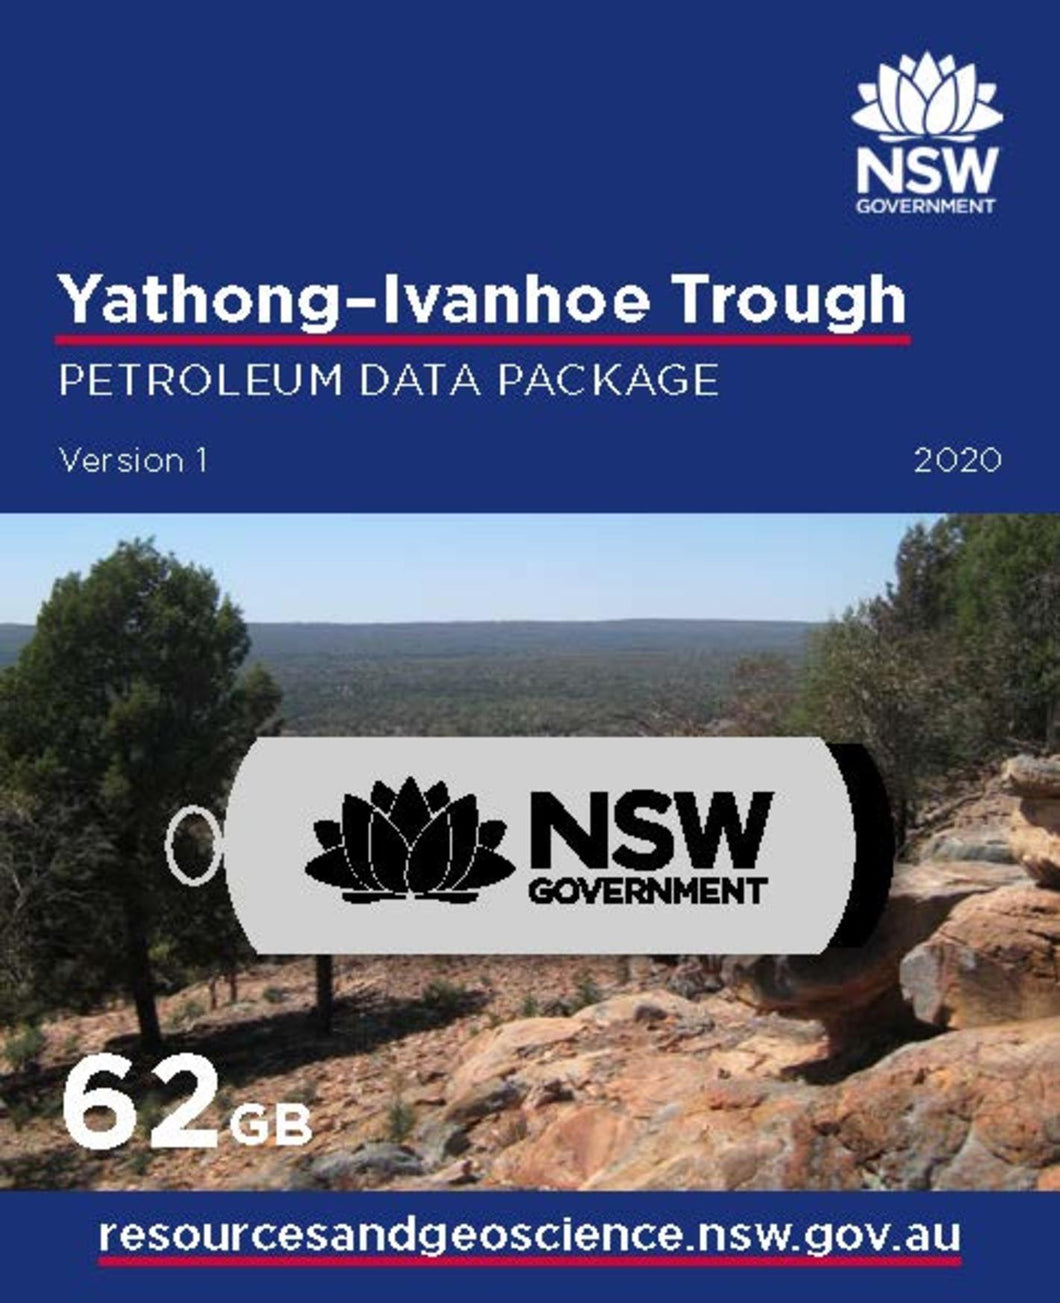 Image of Yathong   Ivanhoe Trough Petroleum Data Package digital data package